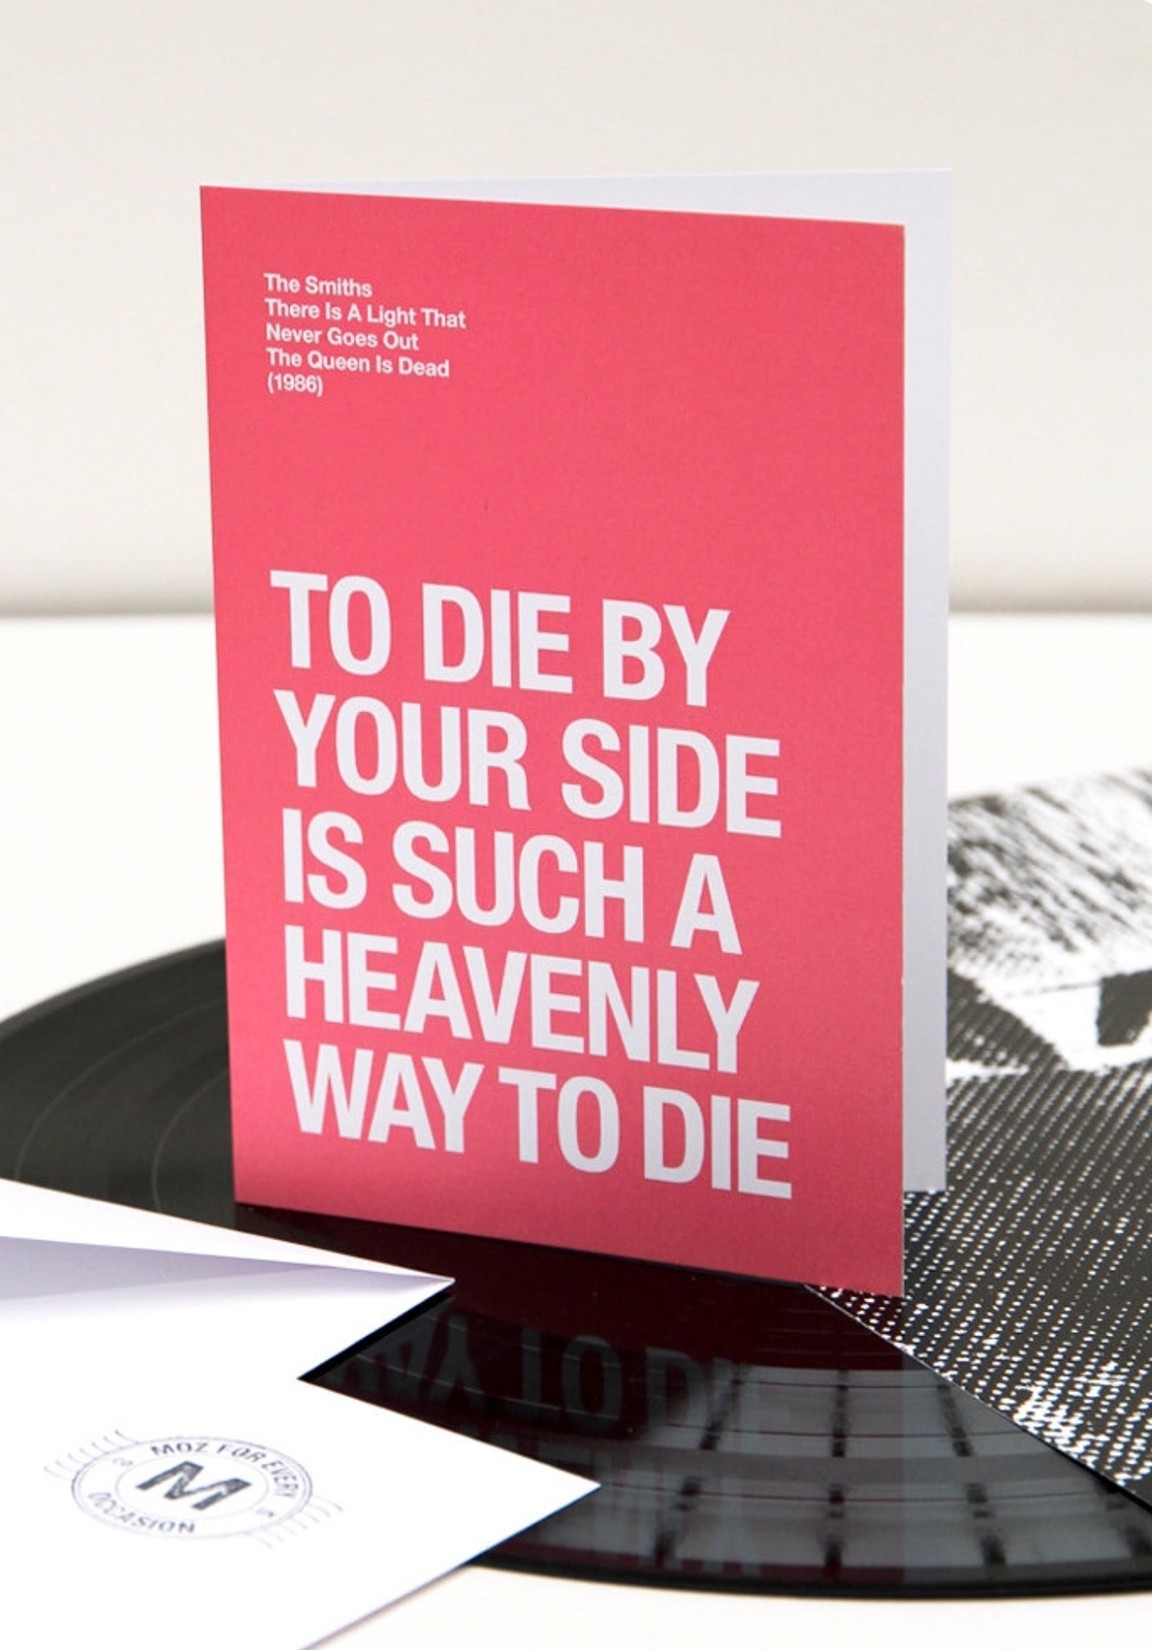 The Smiths — To die by your side is such a heavenly way to die